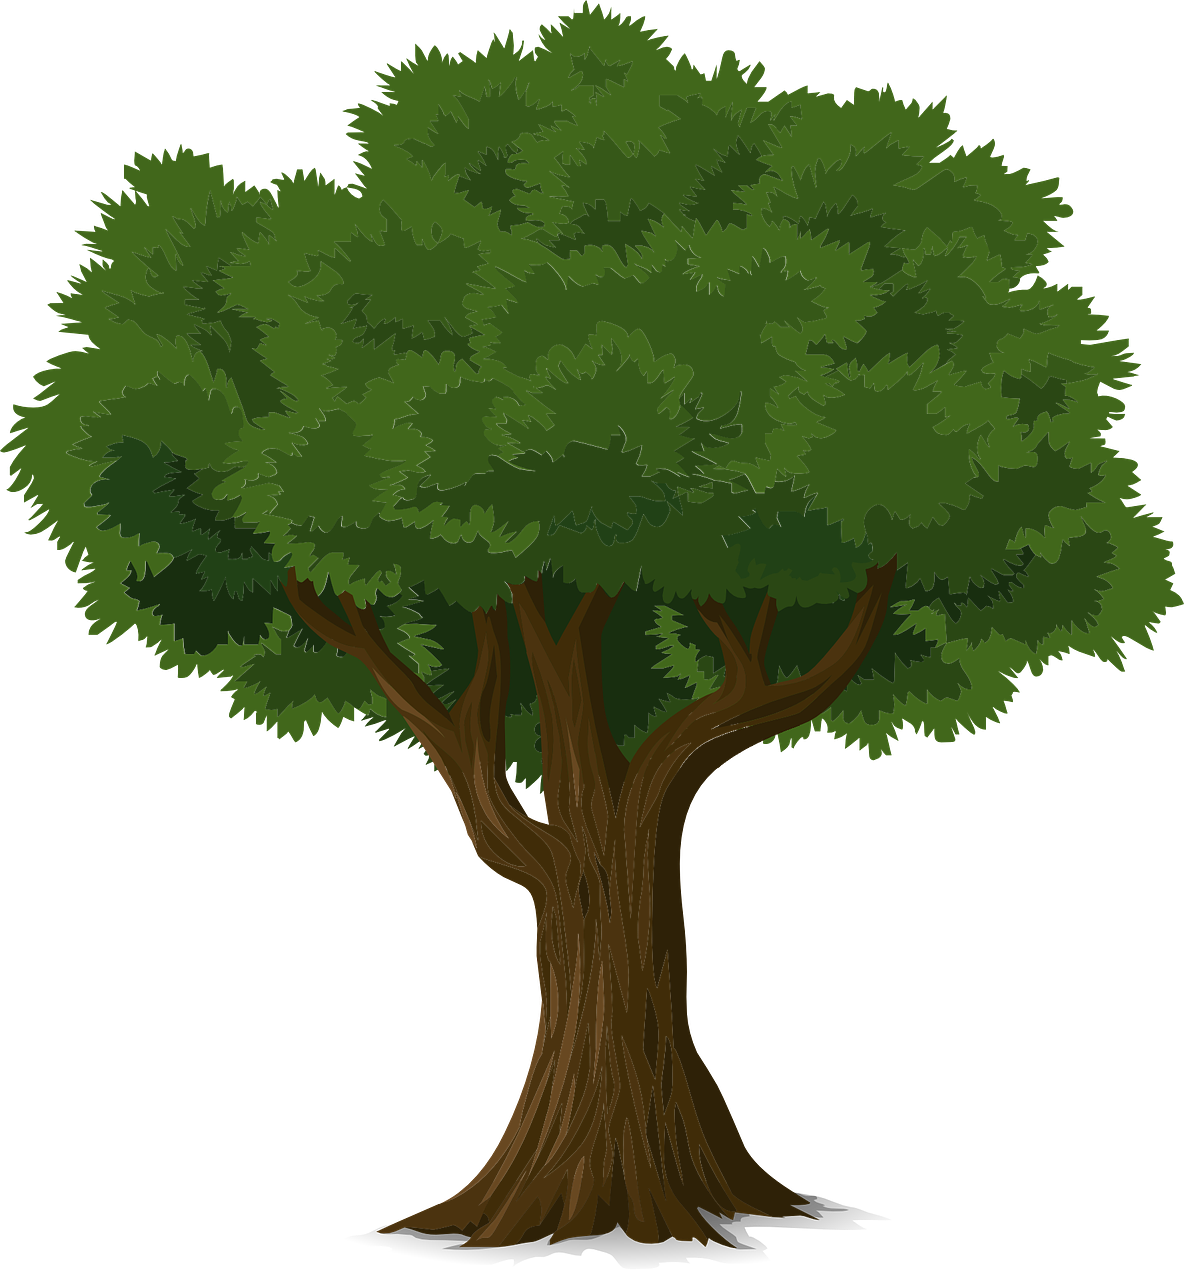 Forest, Tree Forest Trunk Nature Leaves Branches O #forest, #tree.